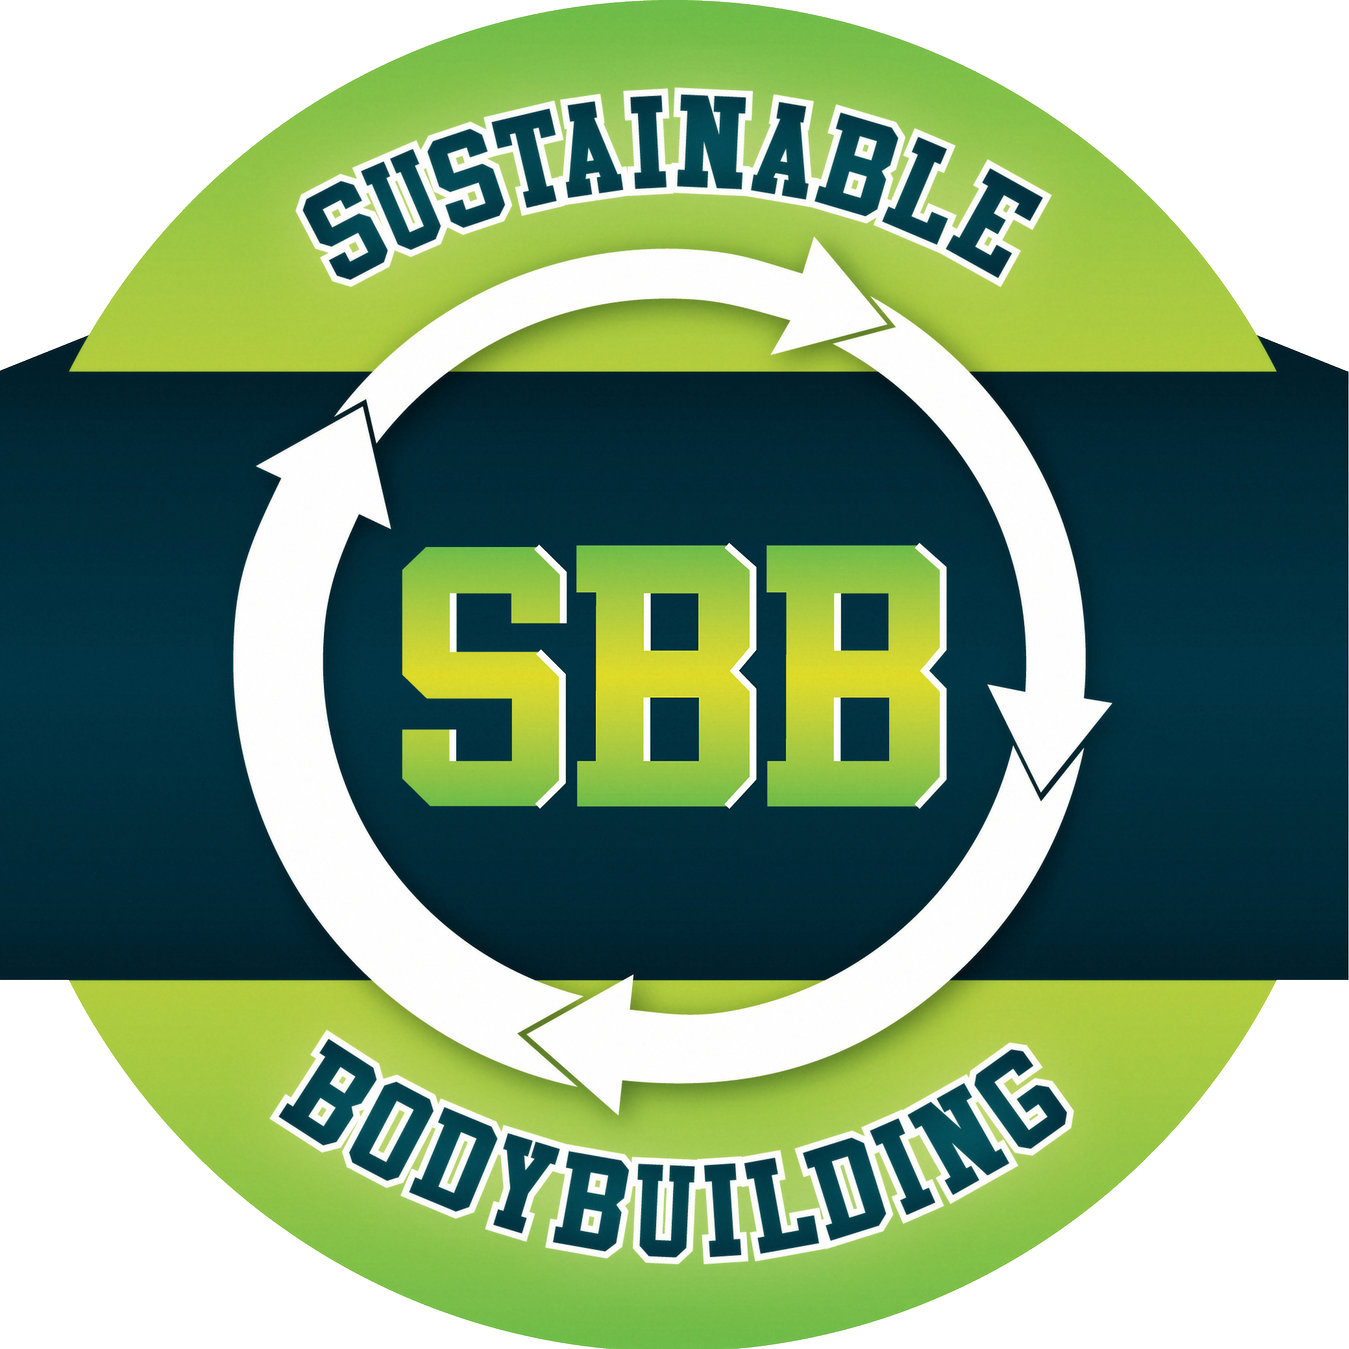 sustainablebb